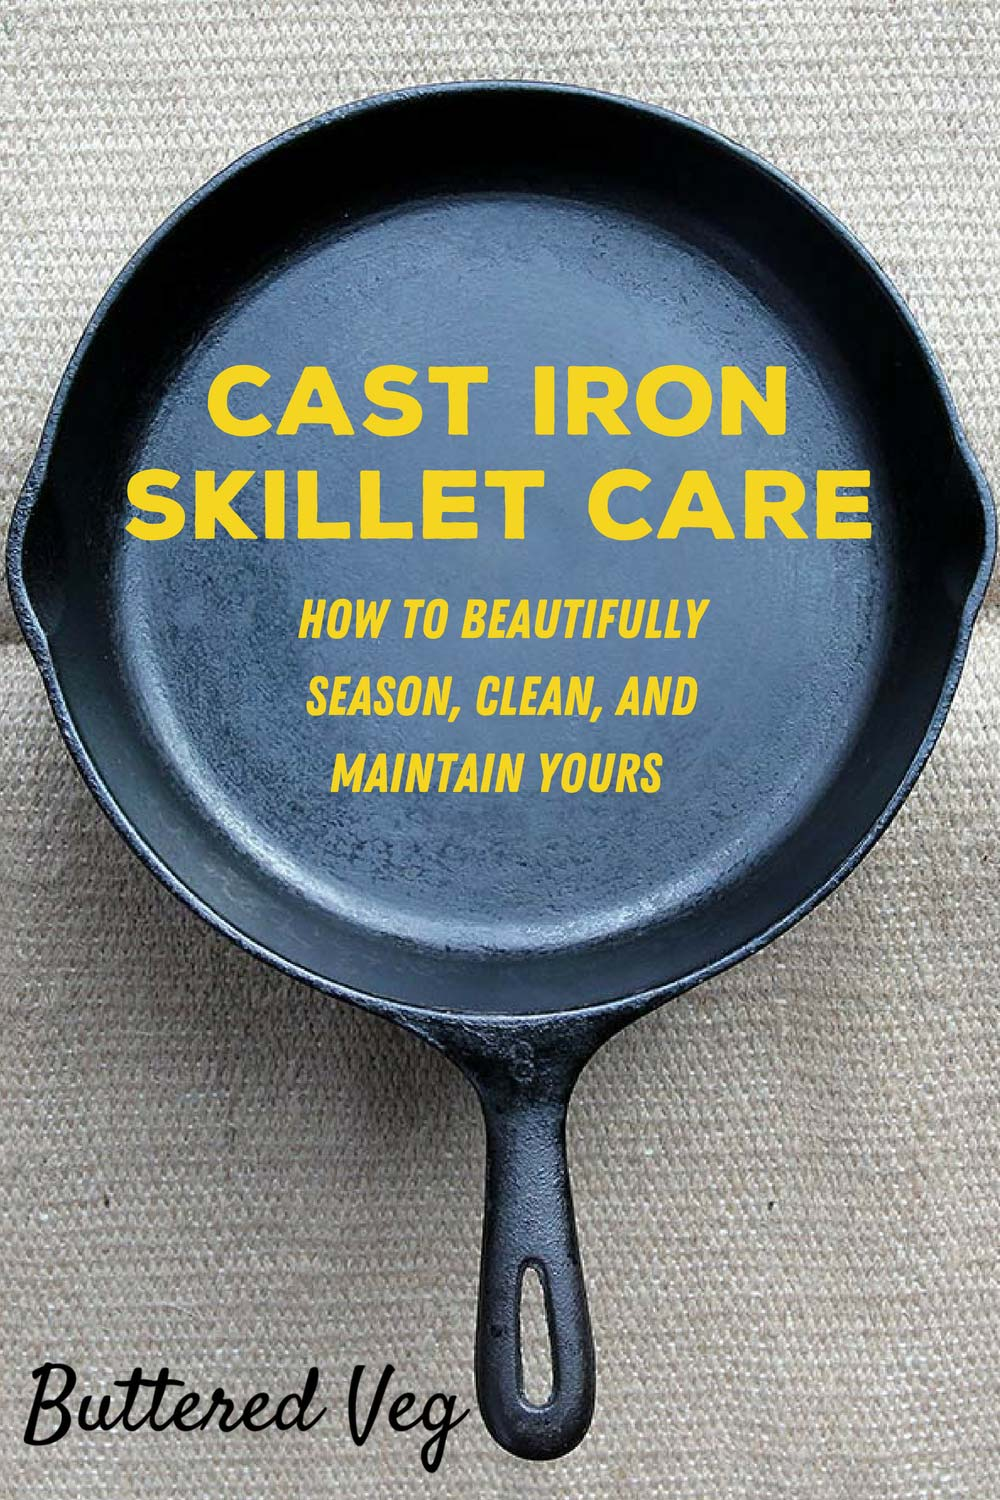 How To Clean, Season, And Maintain Your Cast Iron Skillet